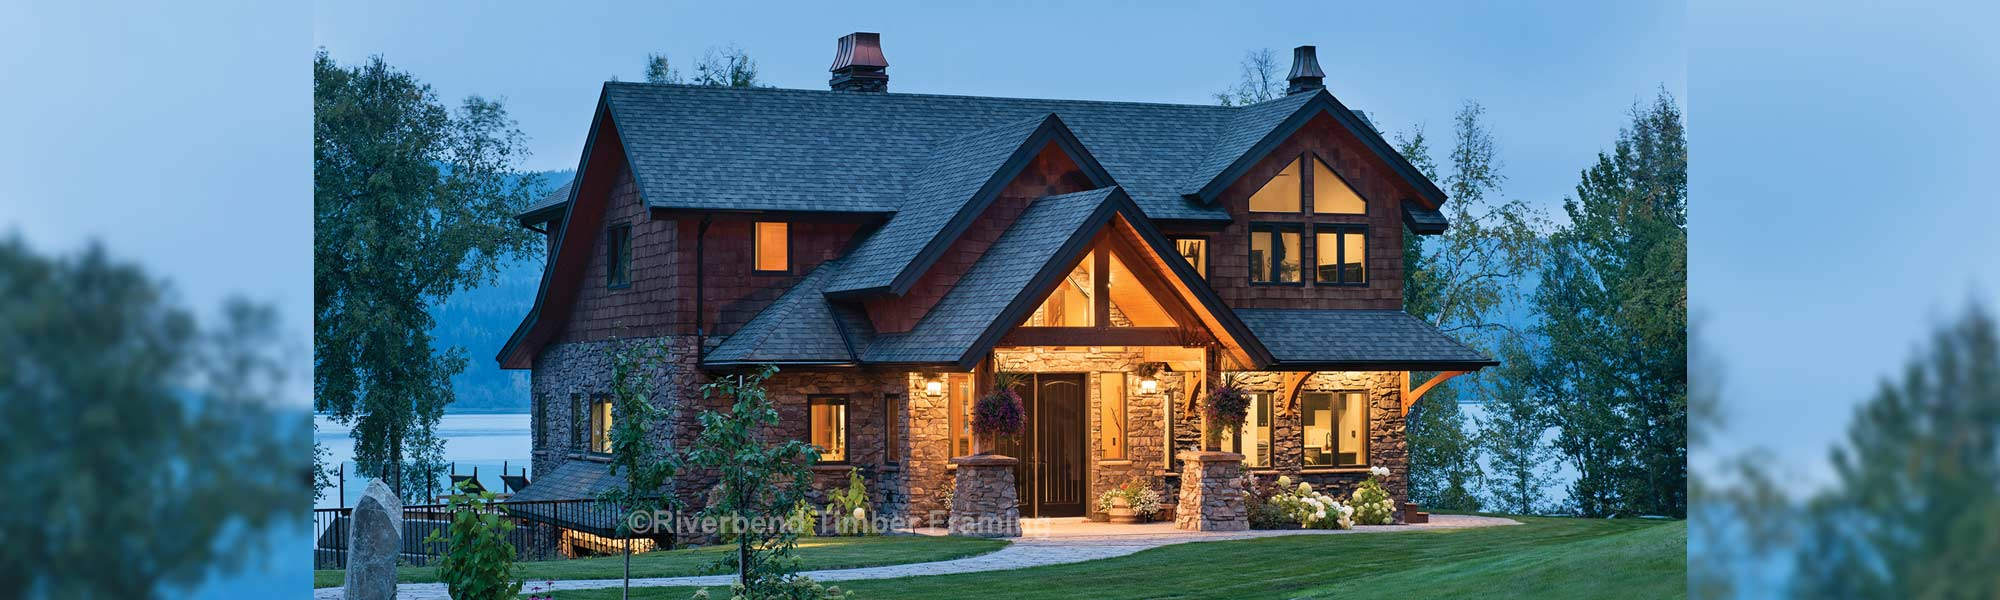 British Columbia timber frame cottage